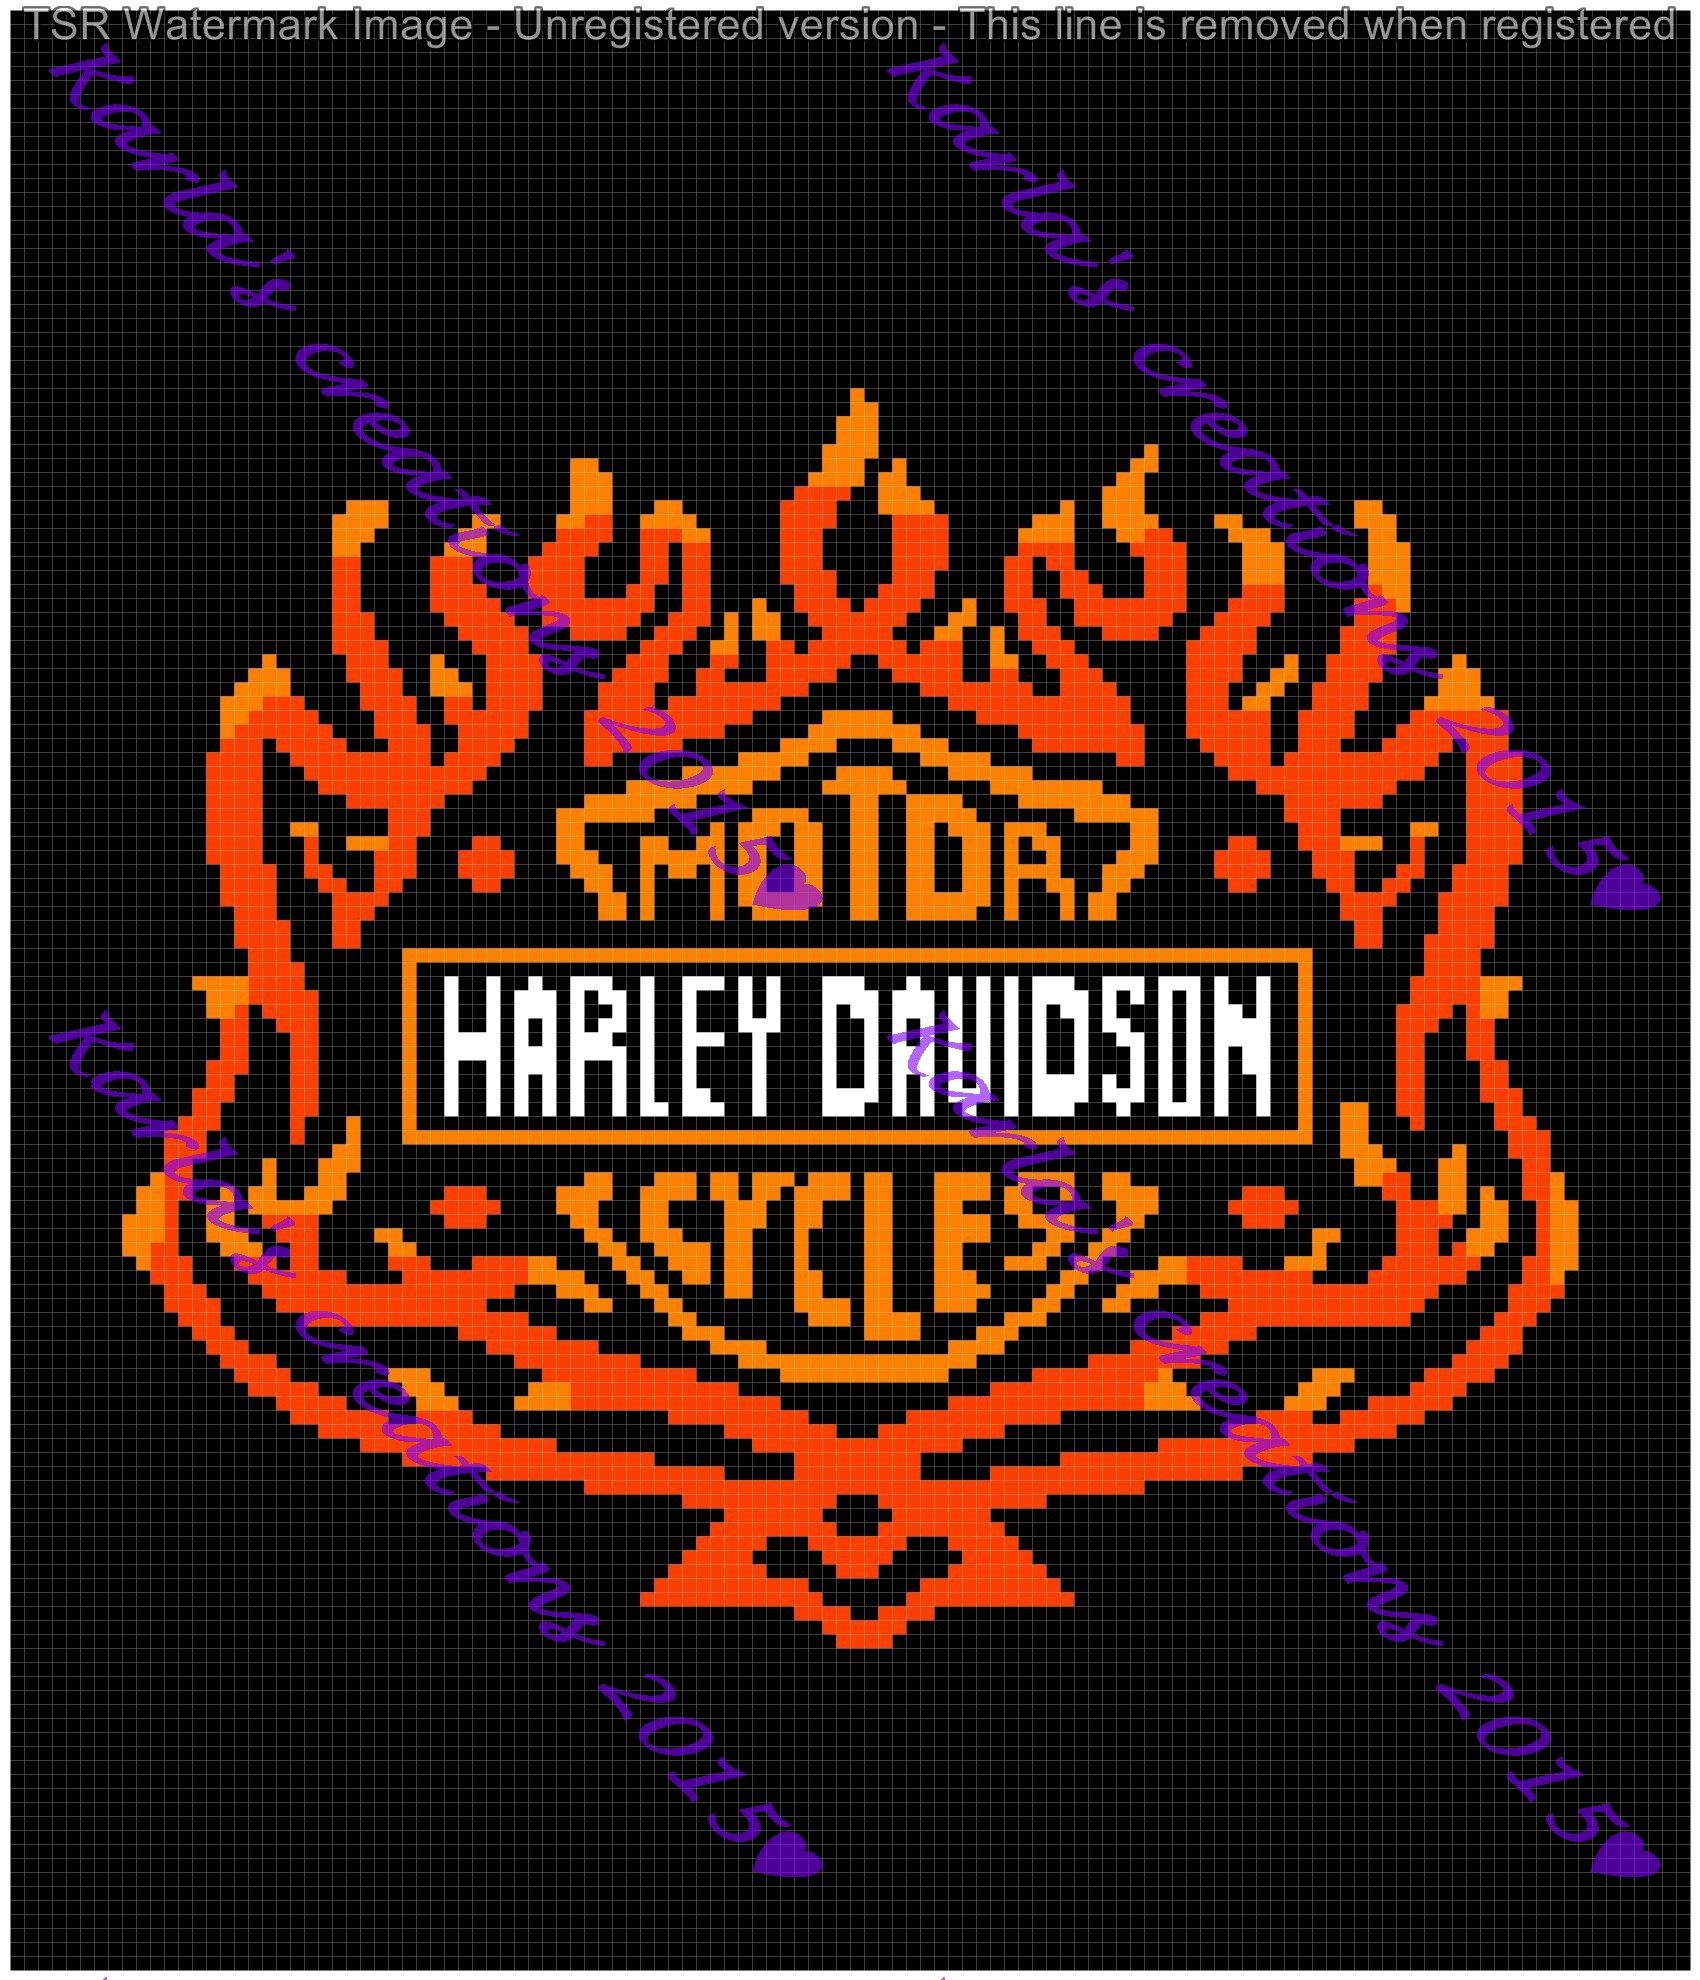 Harley Davidson Logo With Flames 120 X 140 Please Leave Me A Message